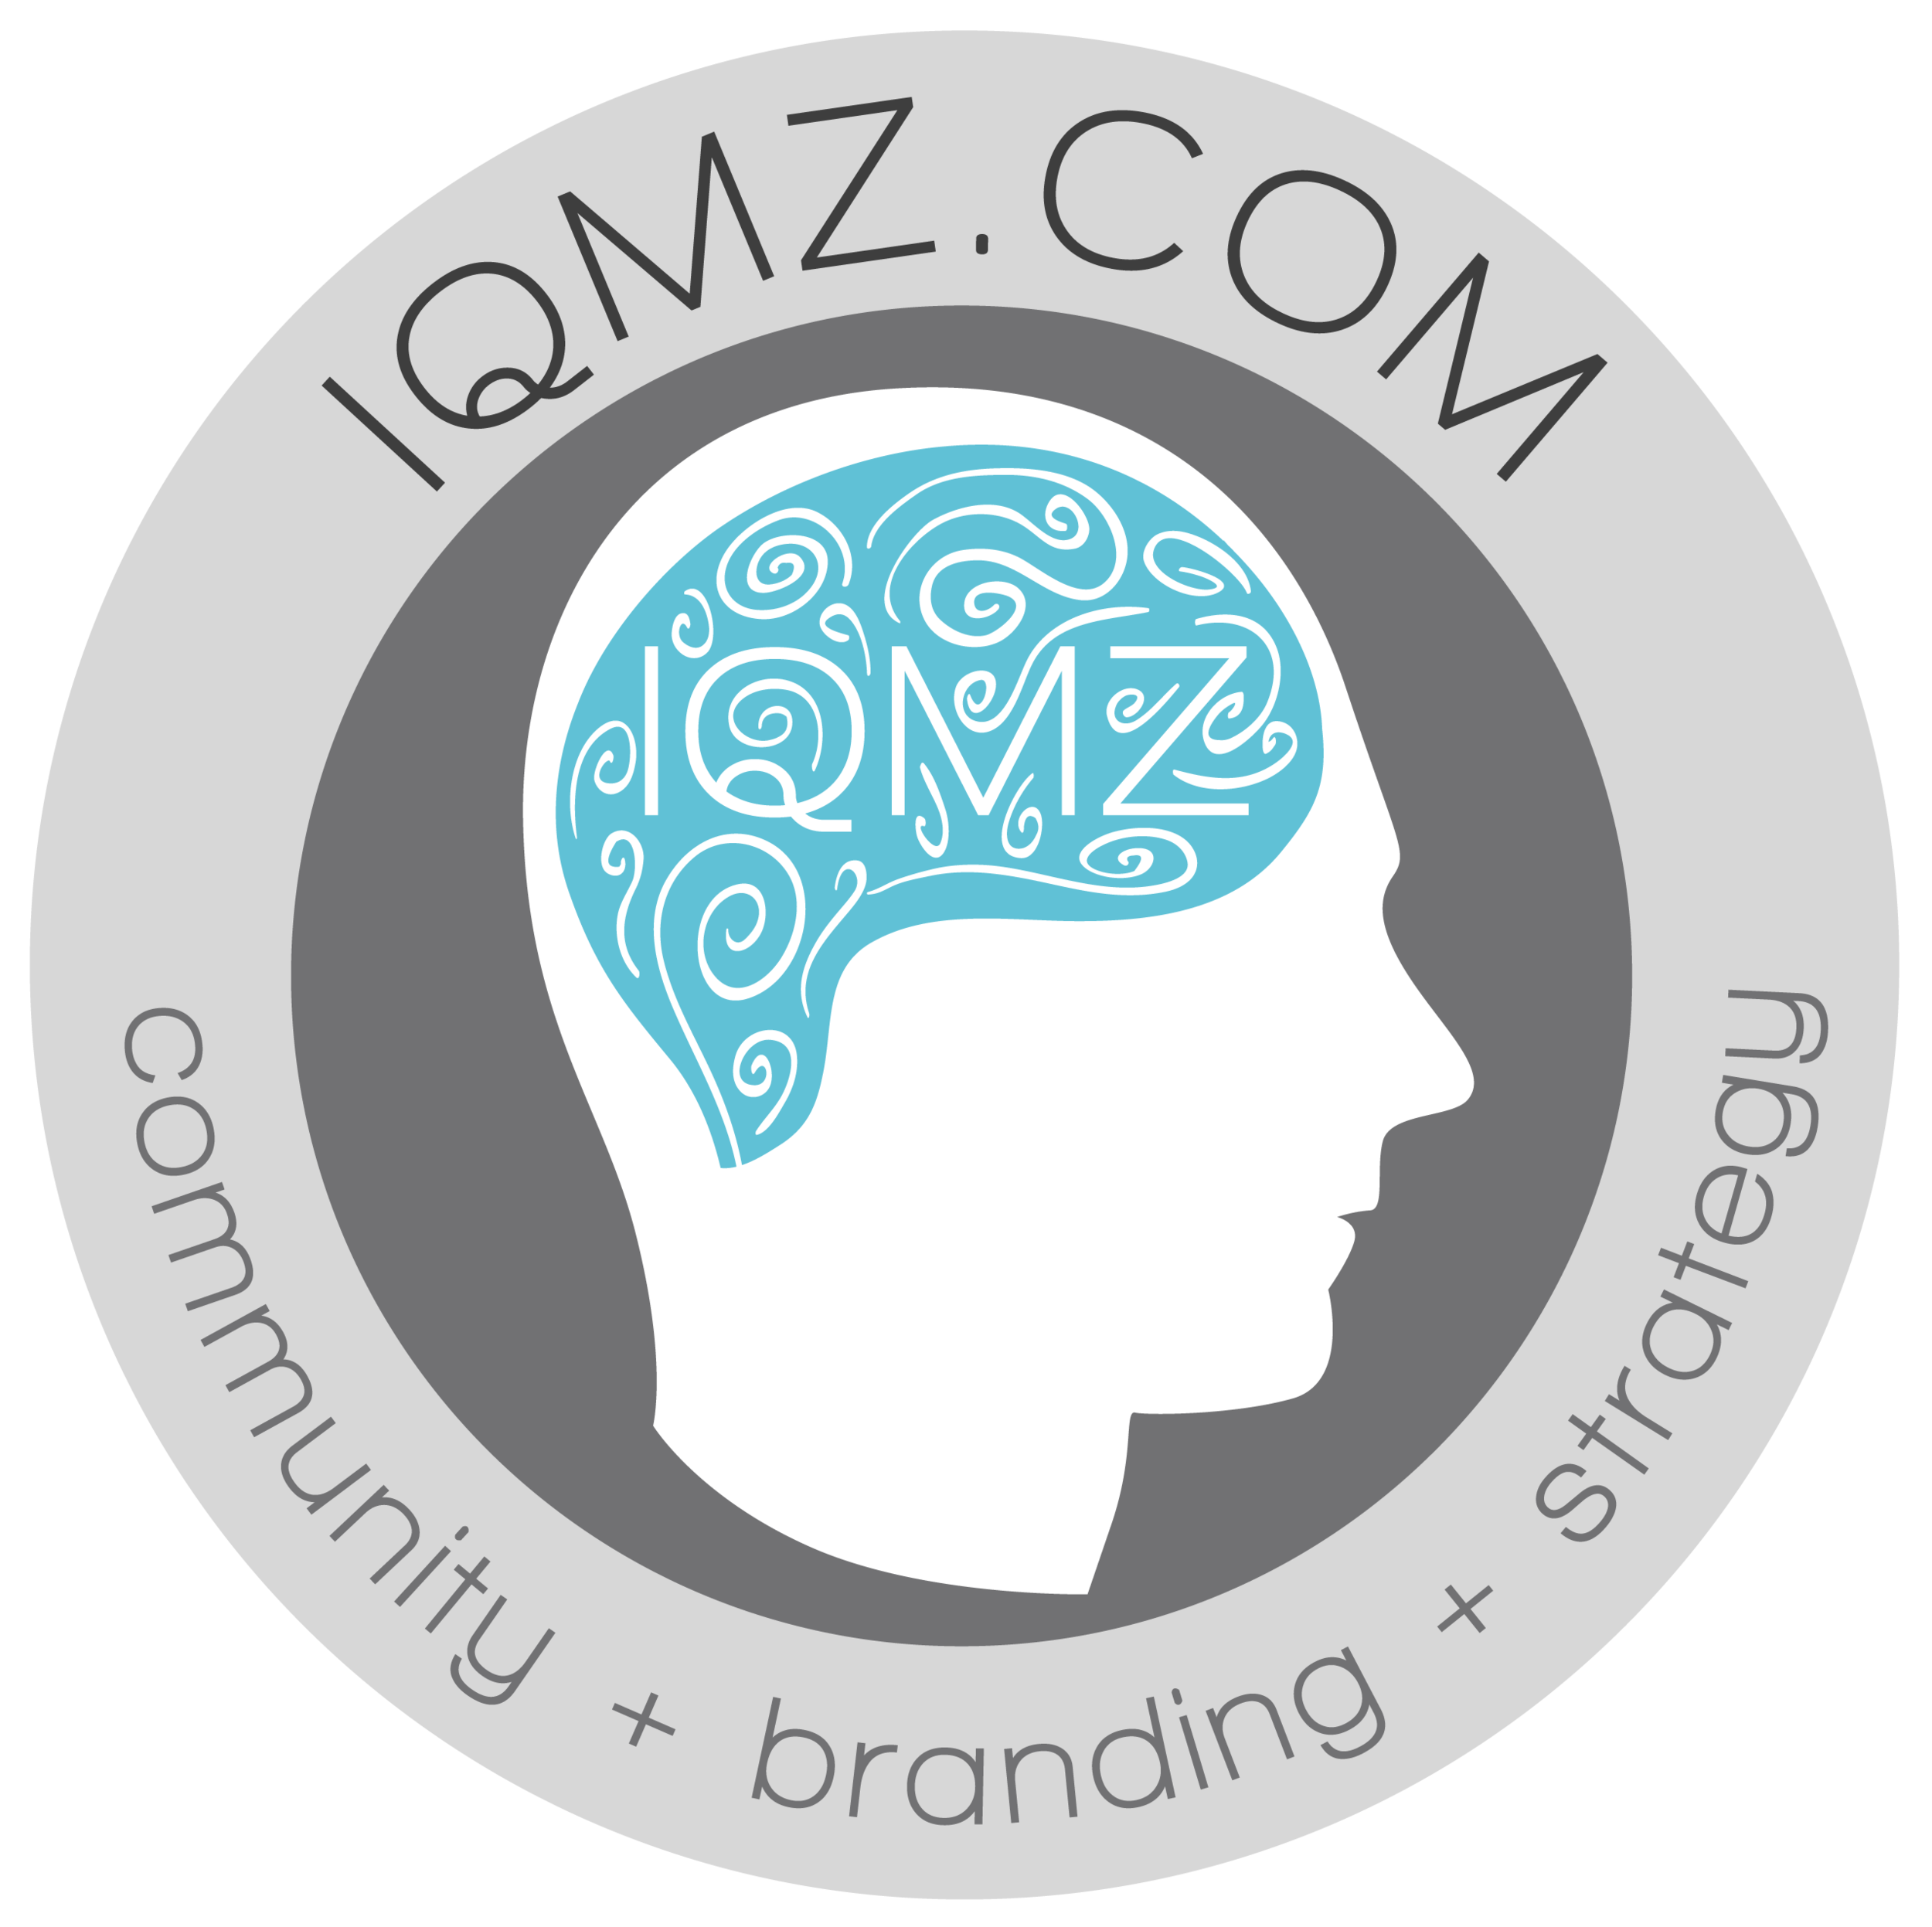 inquiring mindz media llc - Our gift is inspiration and imagination; working with you to develop and crystallize your vision, we create the impression which captures your audience.Inquiring Mindz Media is an innovative design firm with expertise across the board. From identity and branding to graphic and web design and development, we produce comprehensive solutions to fulfill your every design wish. You can have it all.We know you have needs, and we resource to satisfy. Don't you wish every relationship were so simple?